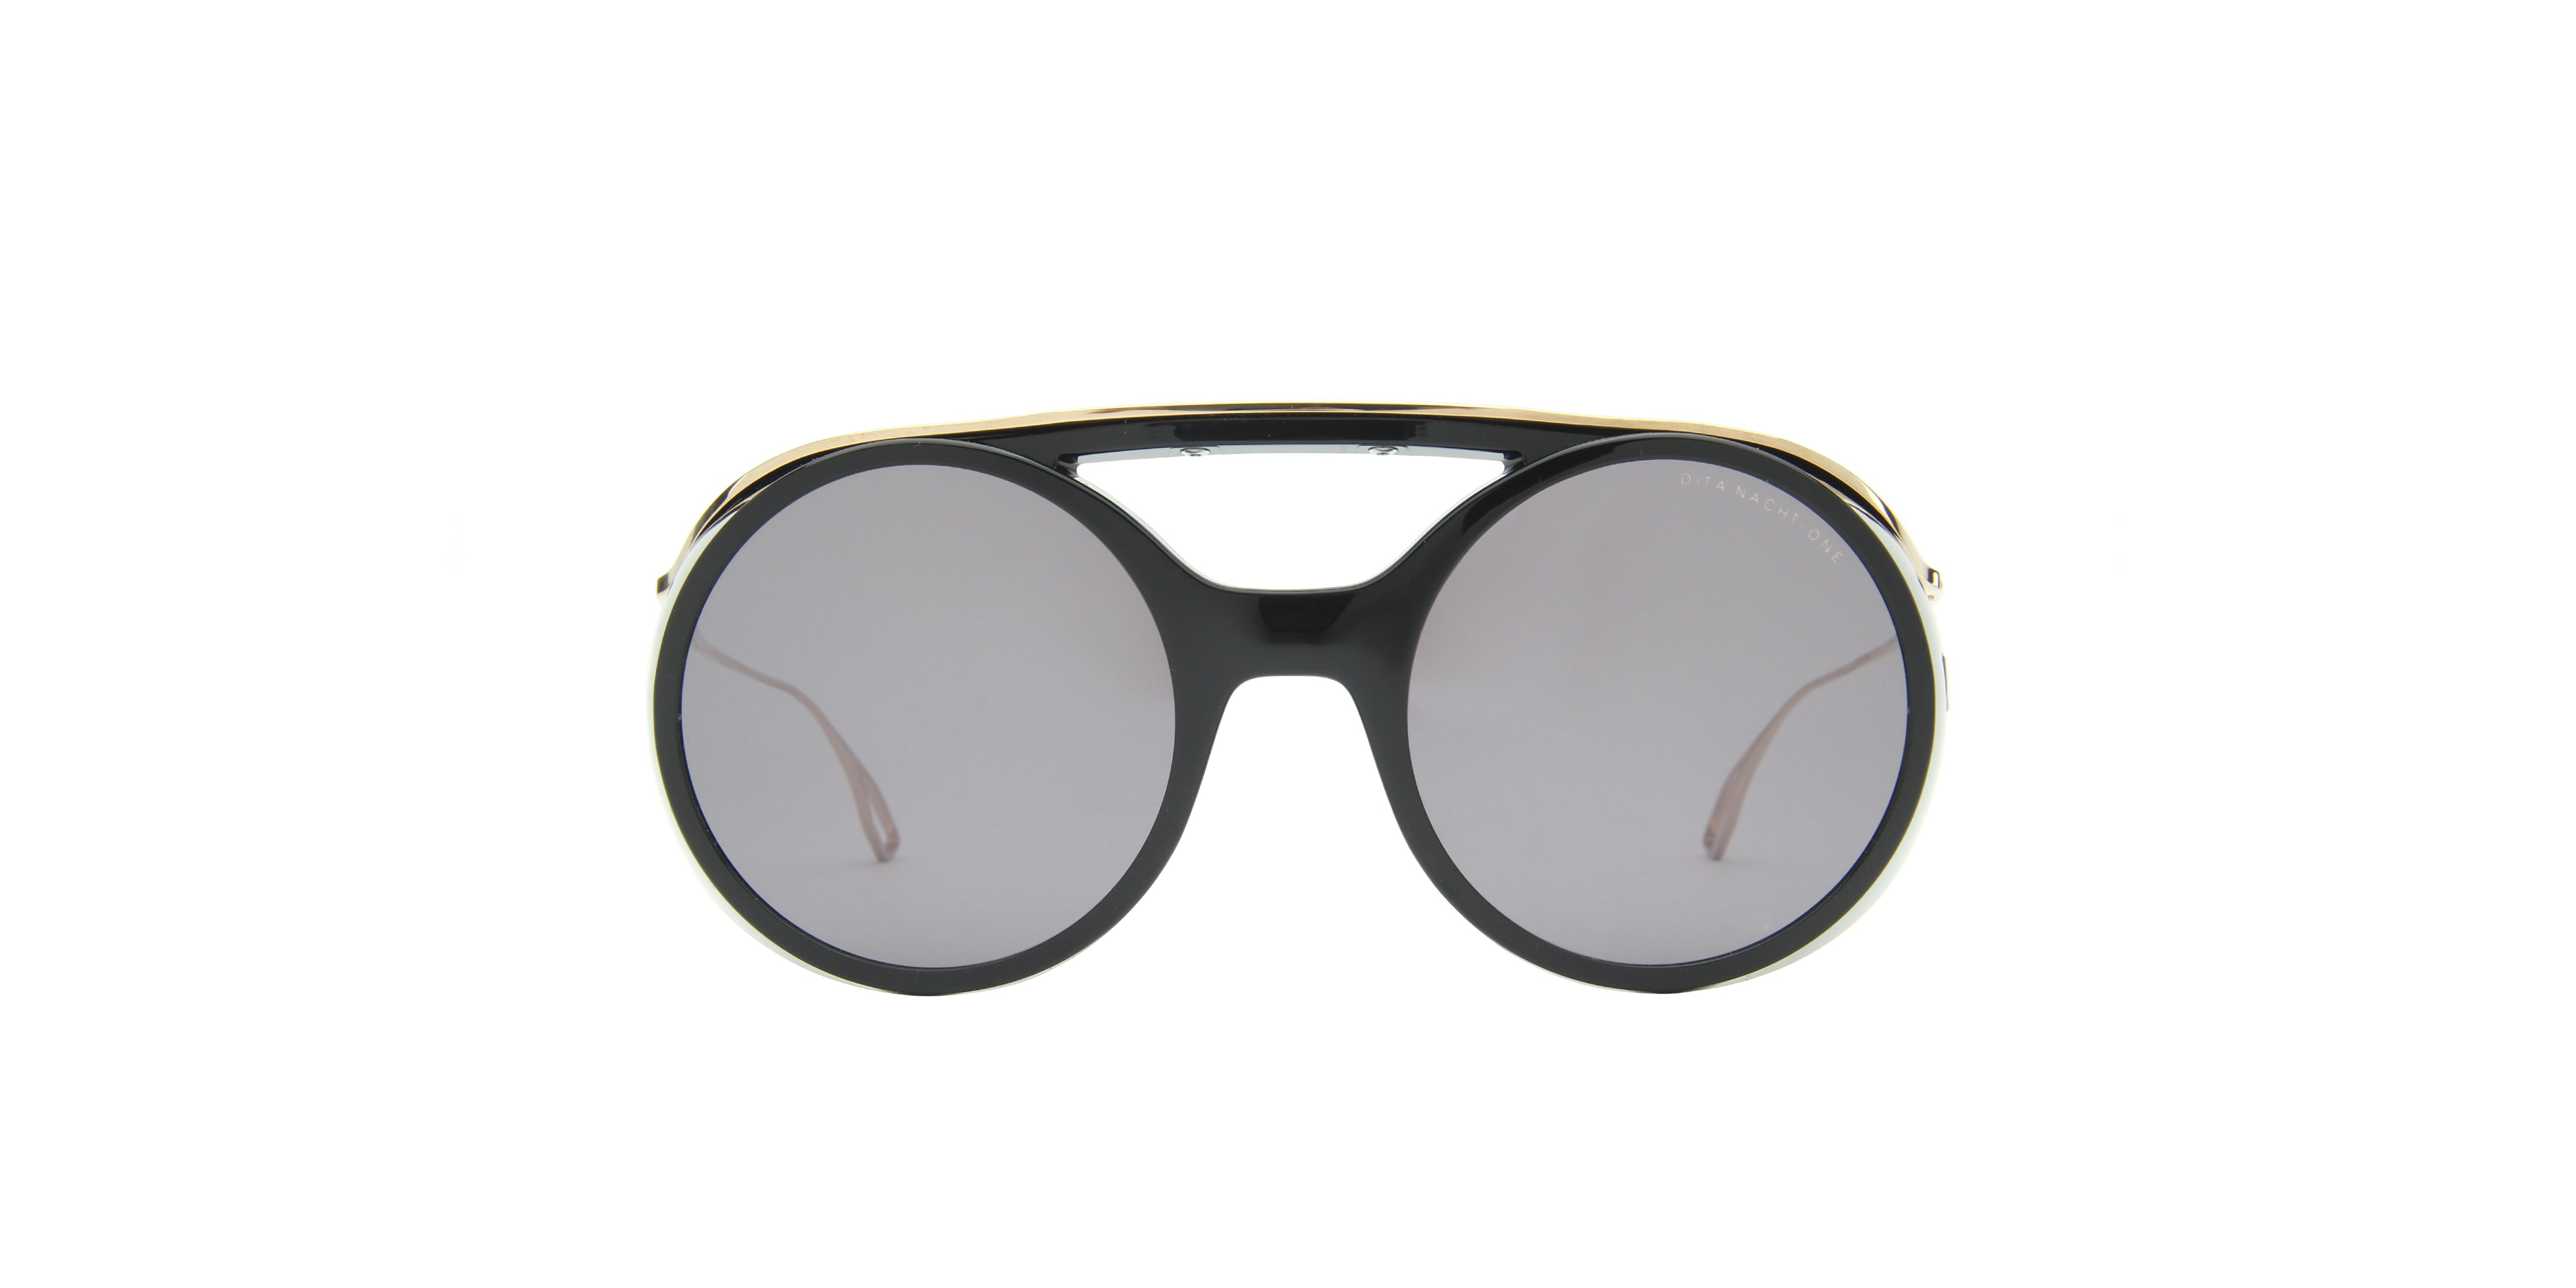 Dita - Nacht-One Black Gold Oval  Sunglasses - 56mm